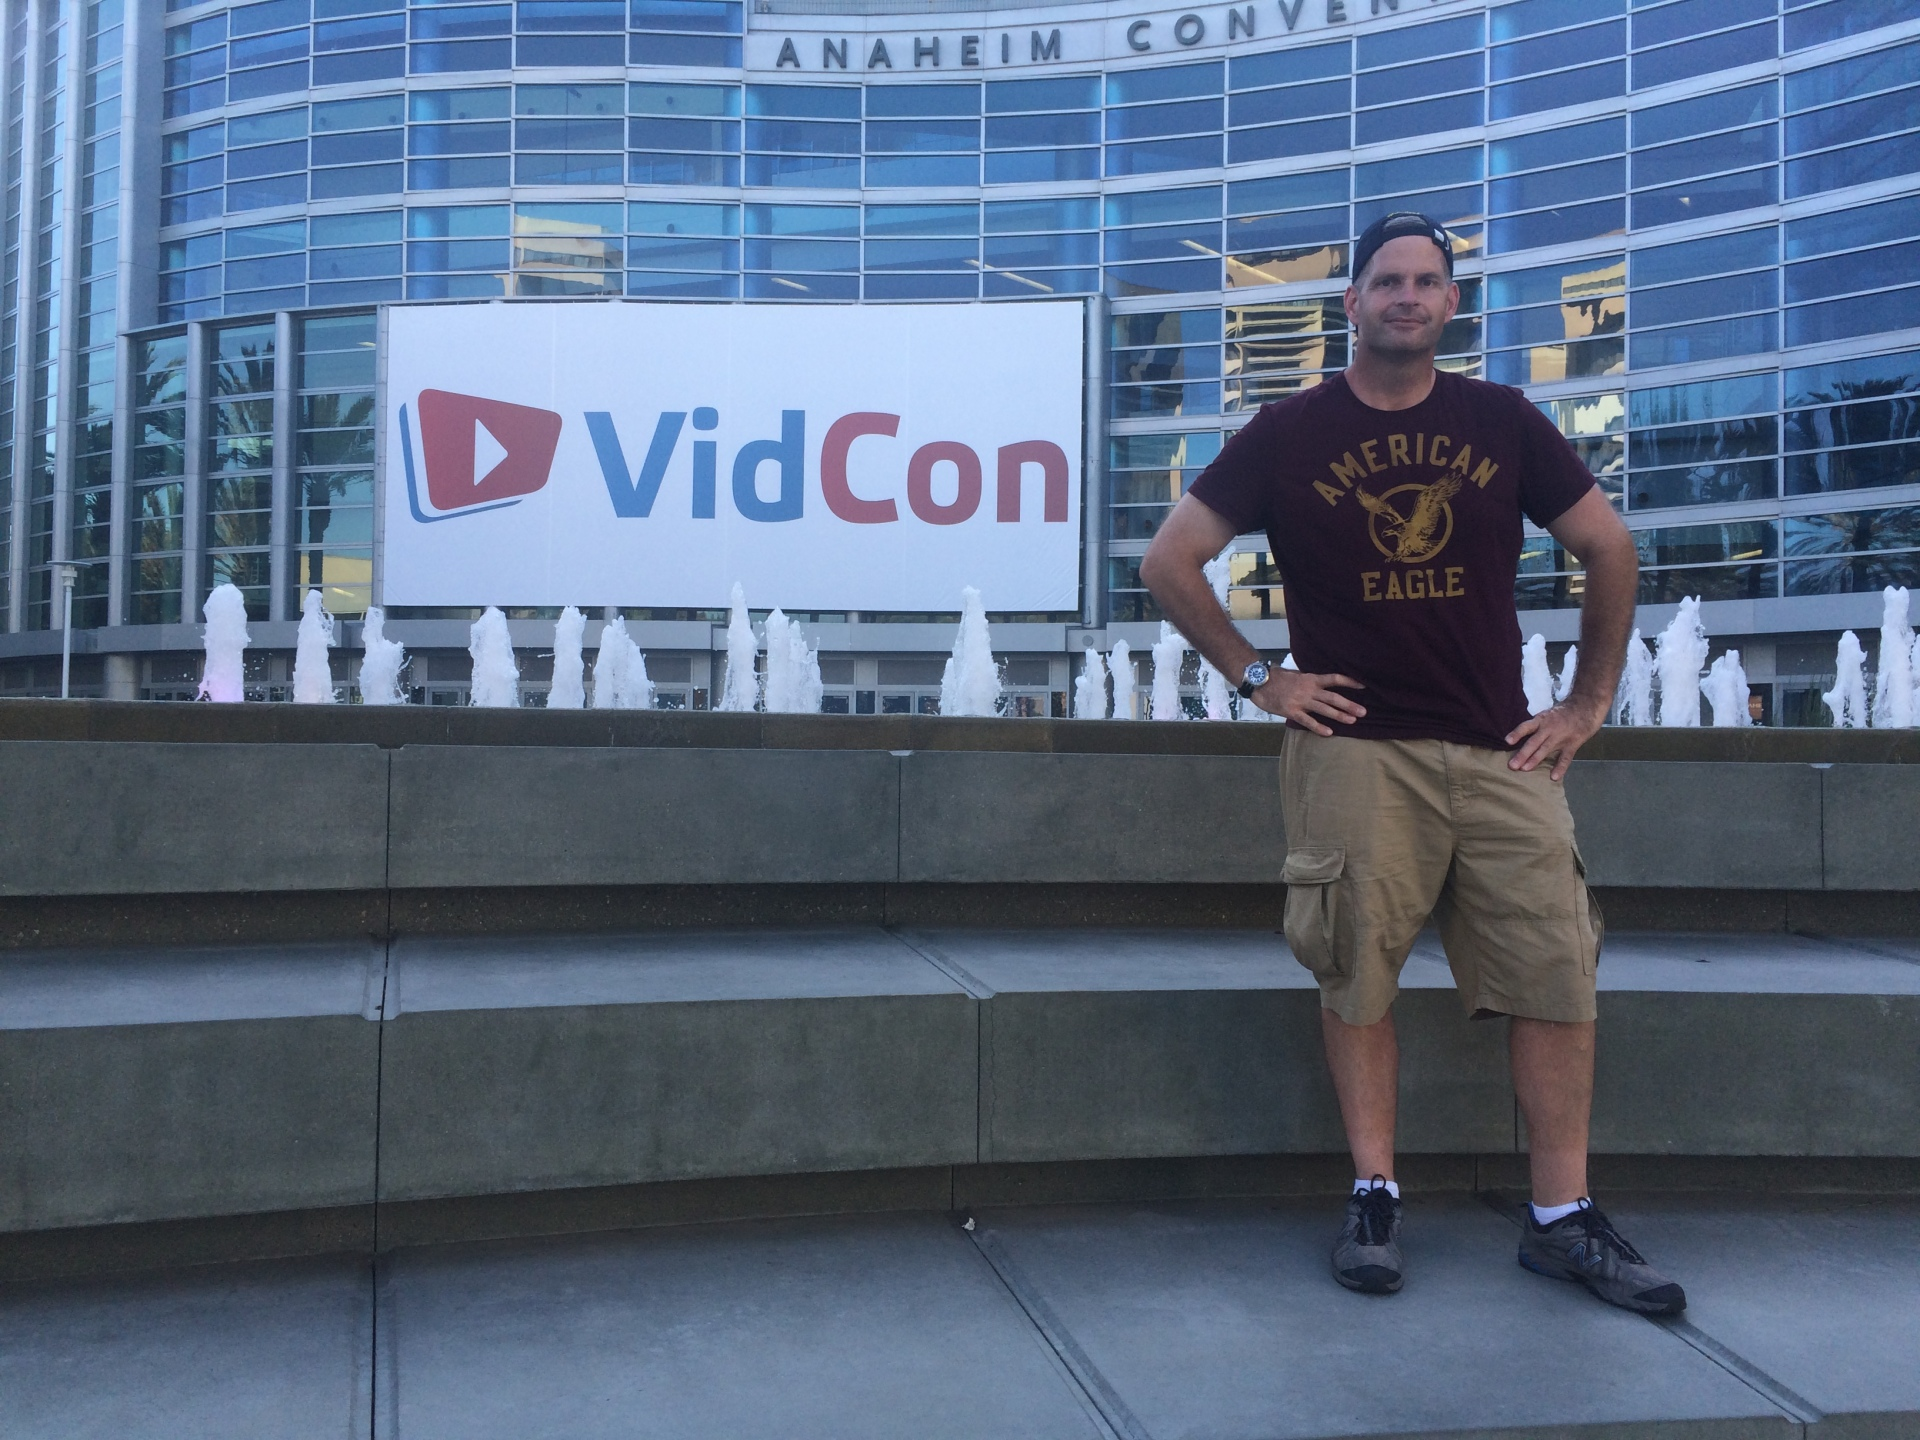 James Lamprey, FunFoodsYT, VidCon, VidCon 2015, Youtube